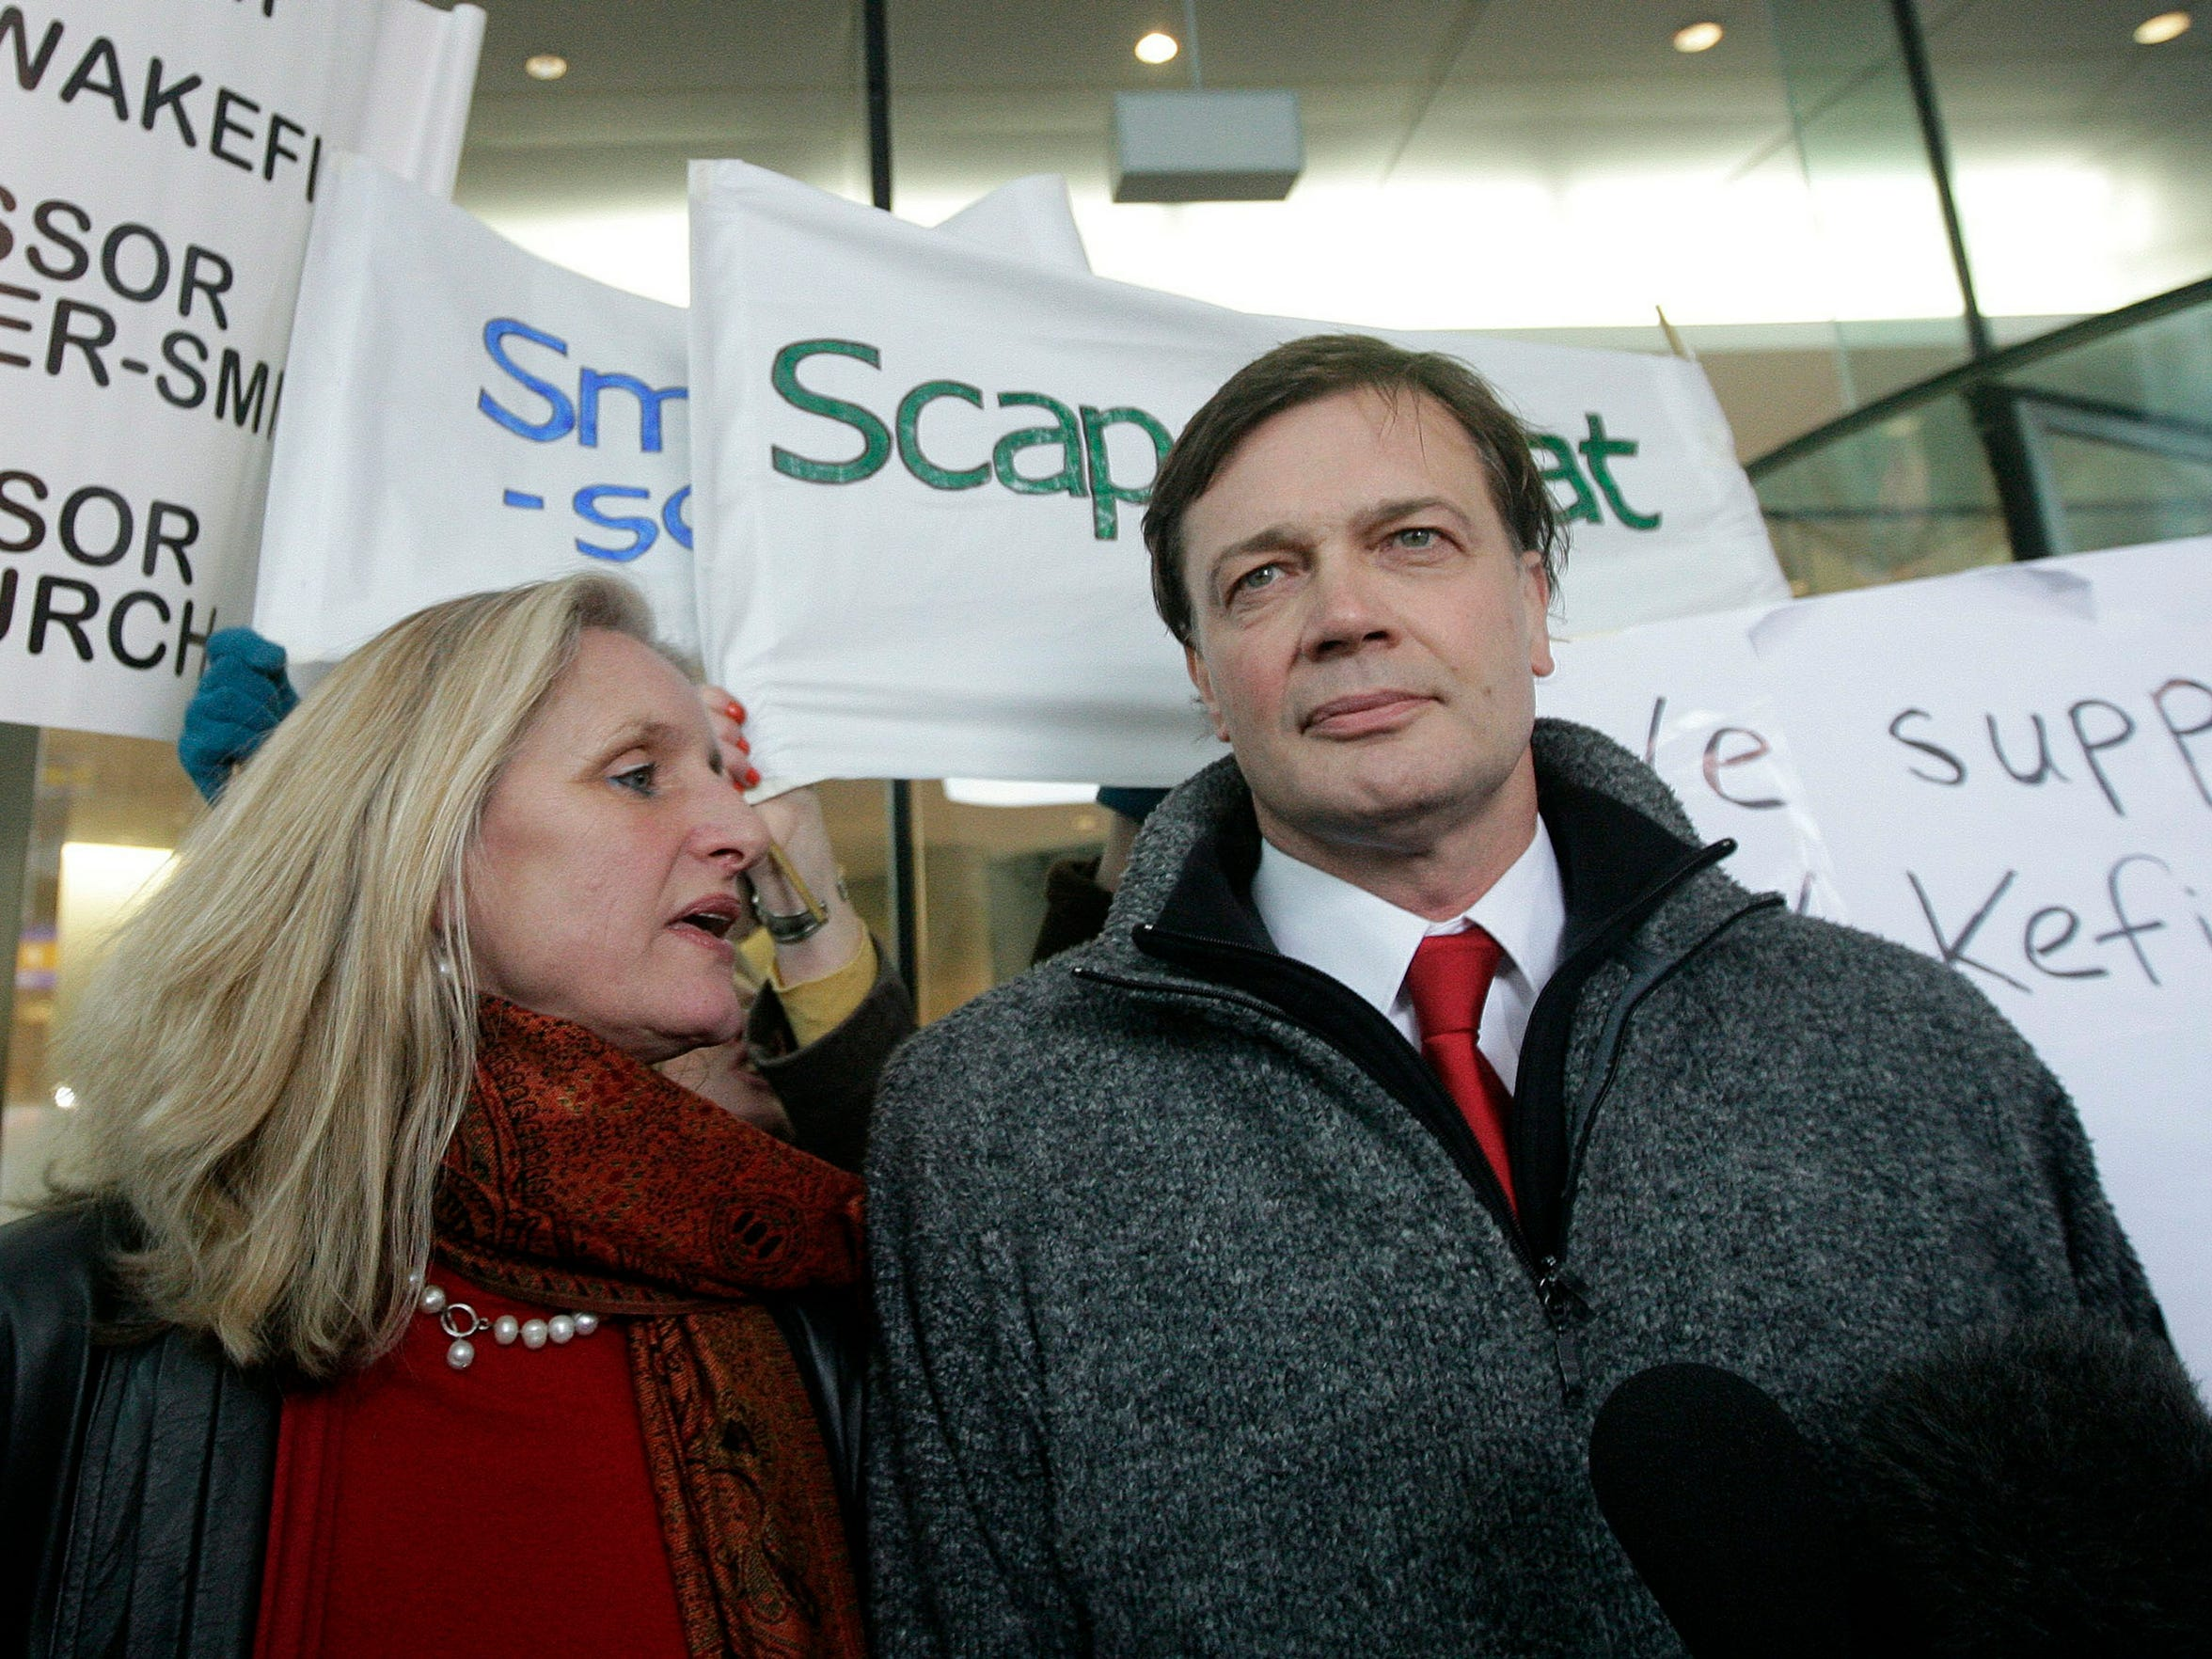 British doctor Andrew Wakefield and his wife,  Carmel, arrive at the General Medical Council  in central London on Jan. 28, 2010.